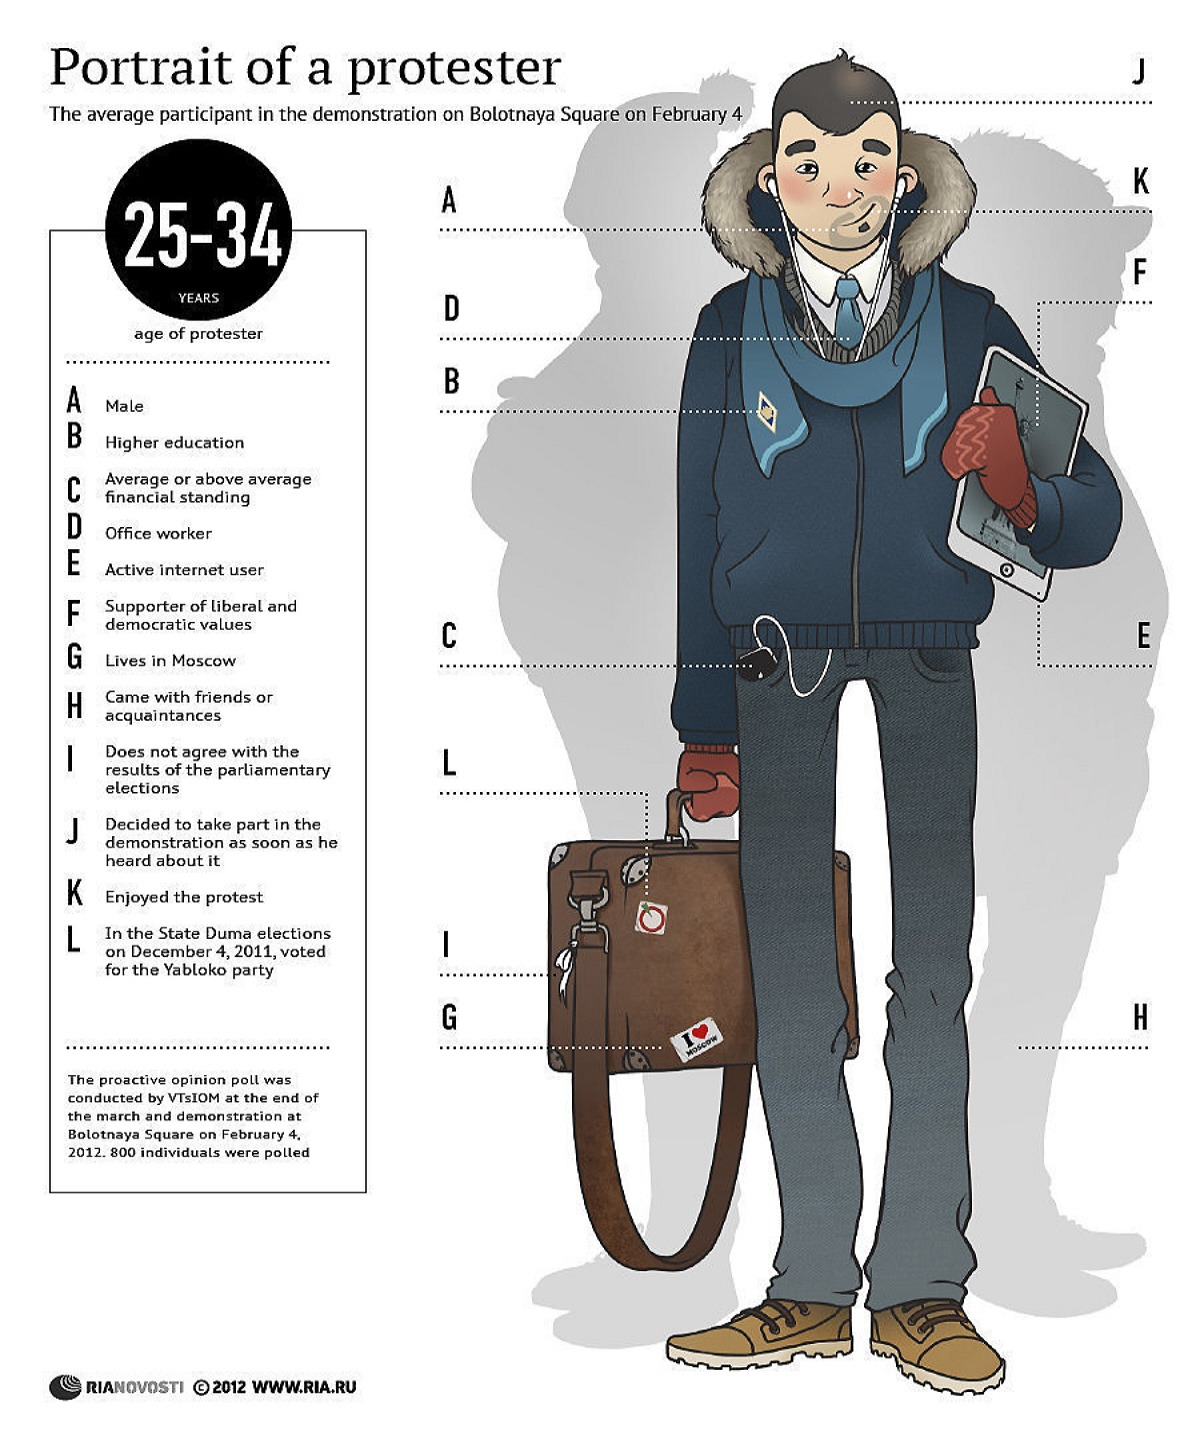 00 RIA-Novosti Infographics. Portrait of a Protestor. 2012